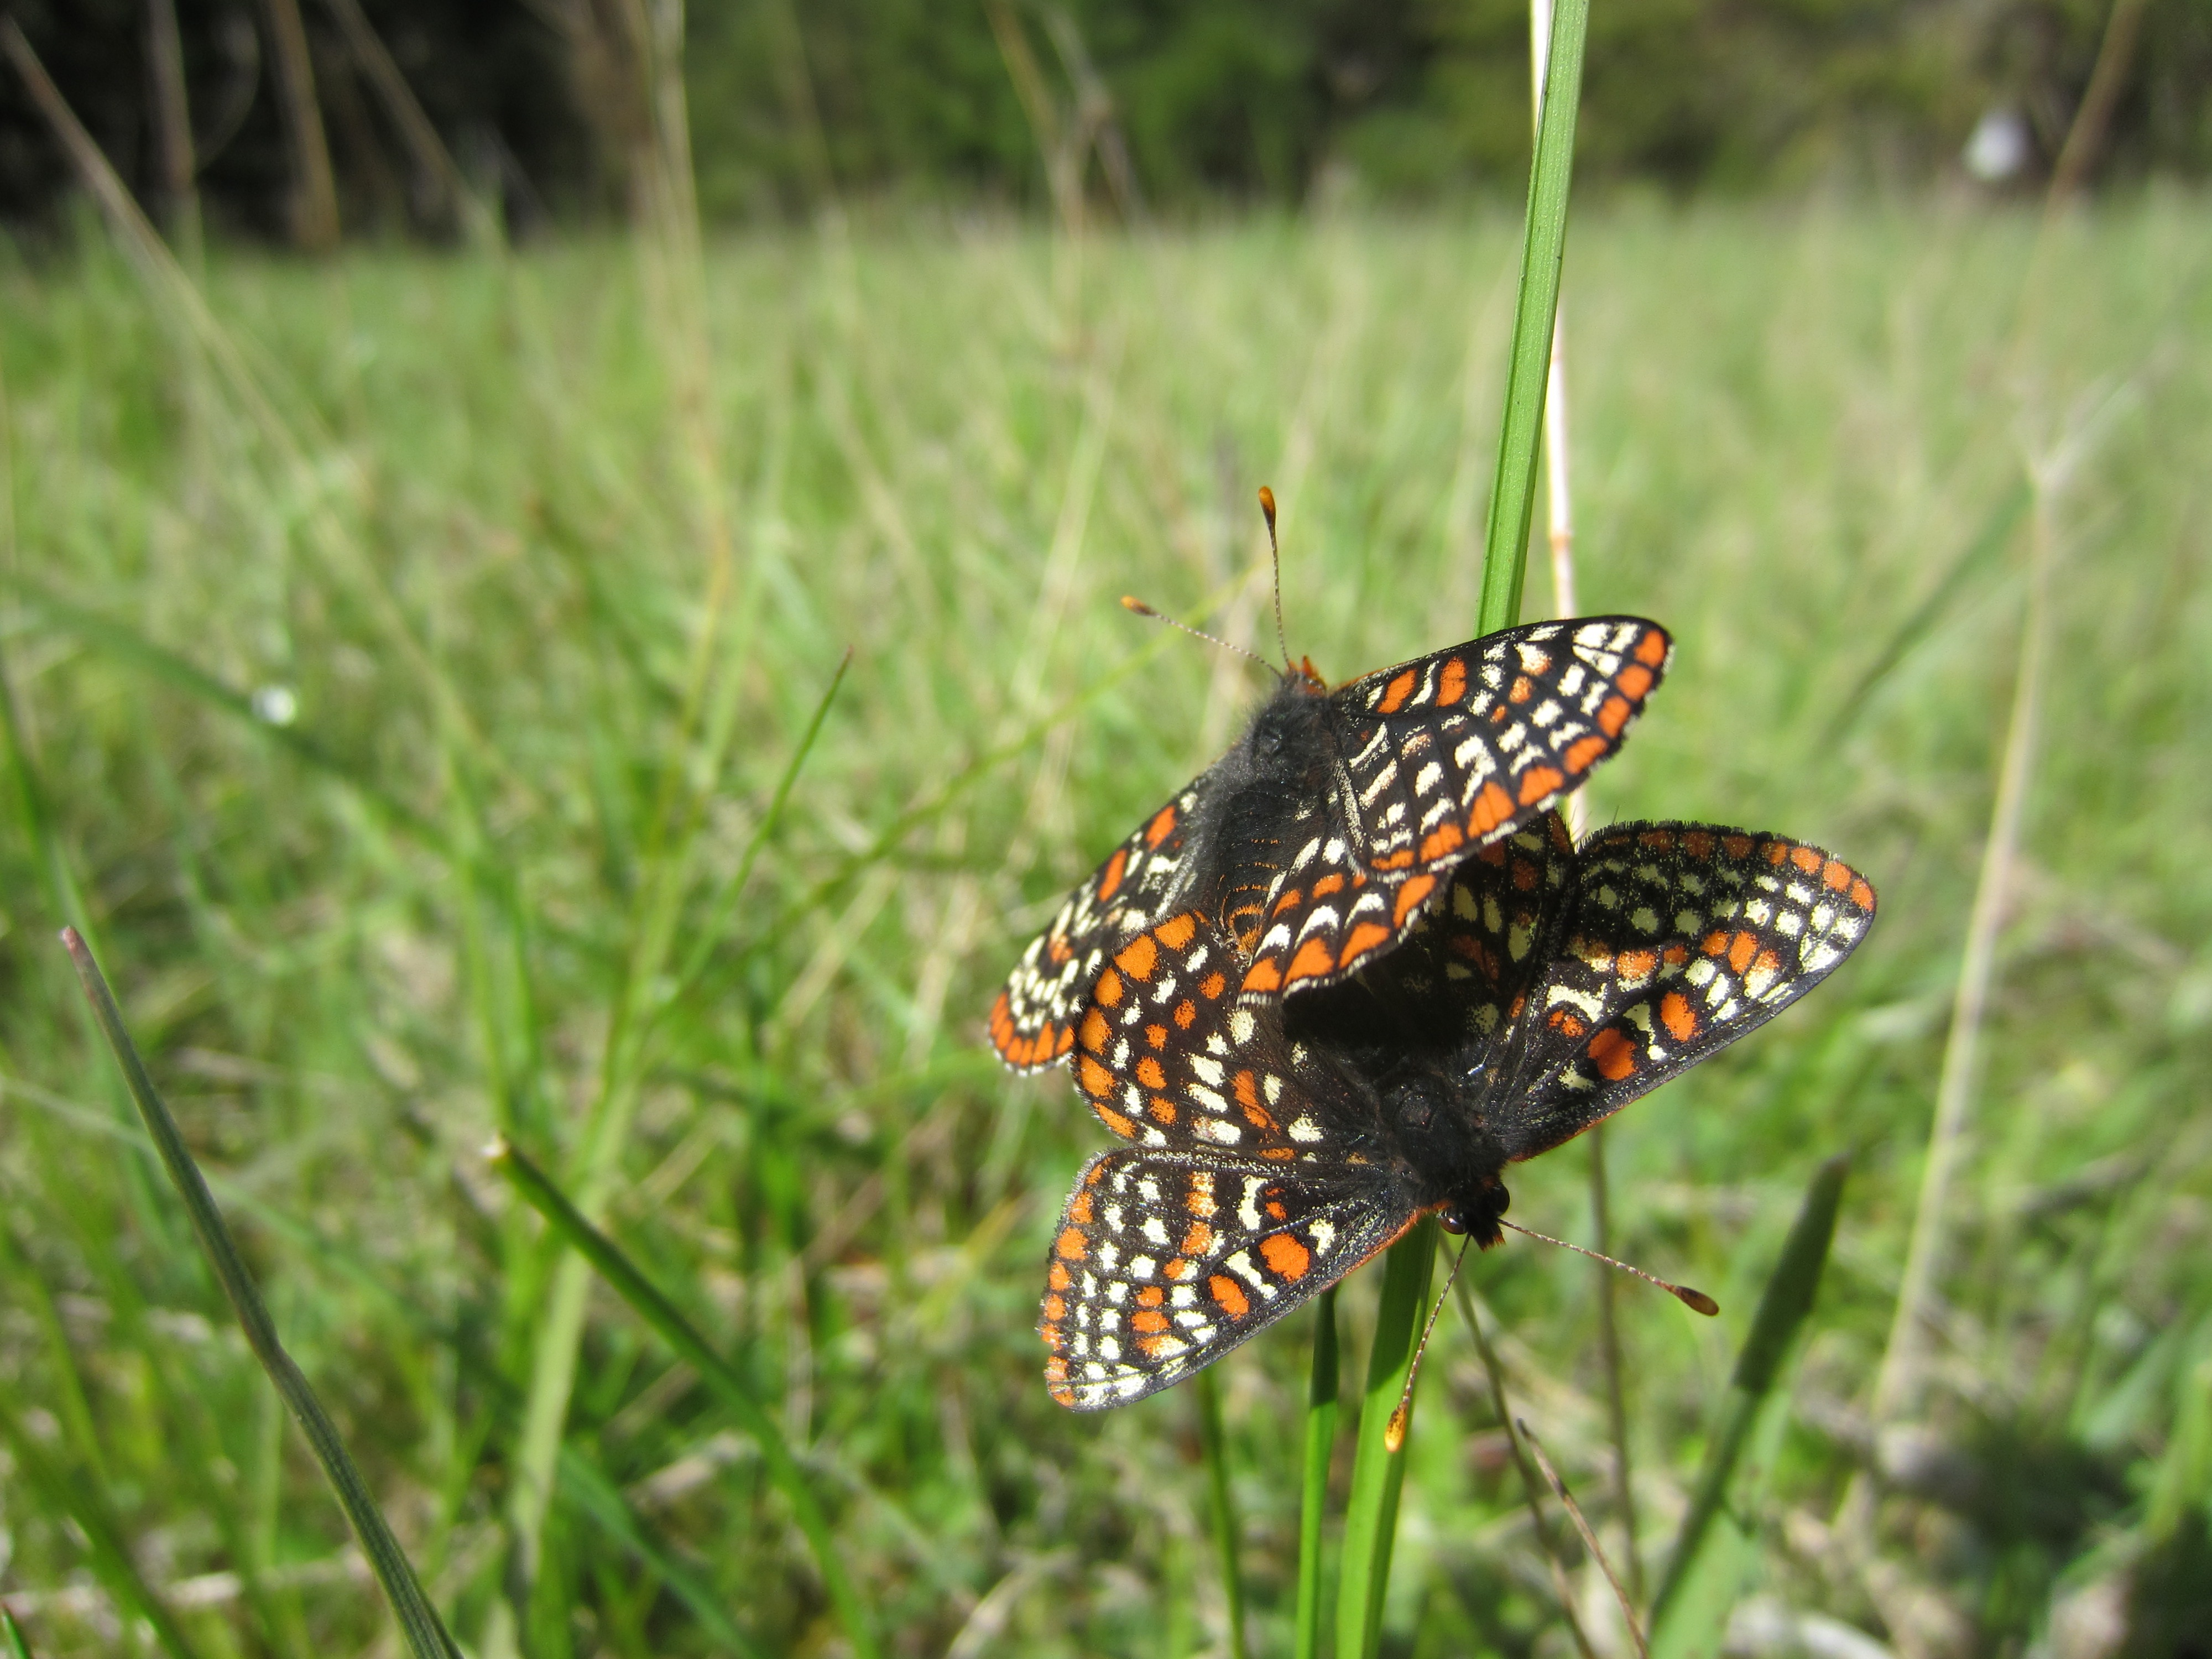 Two black-white-and-orange butterflies have landed on a long blade of grass and are shown with wings outstretched.